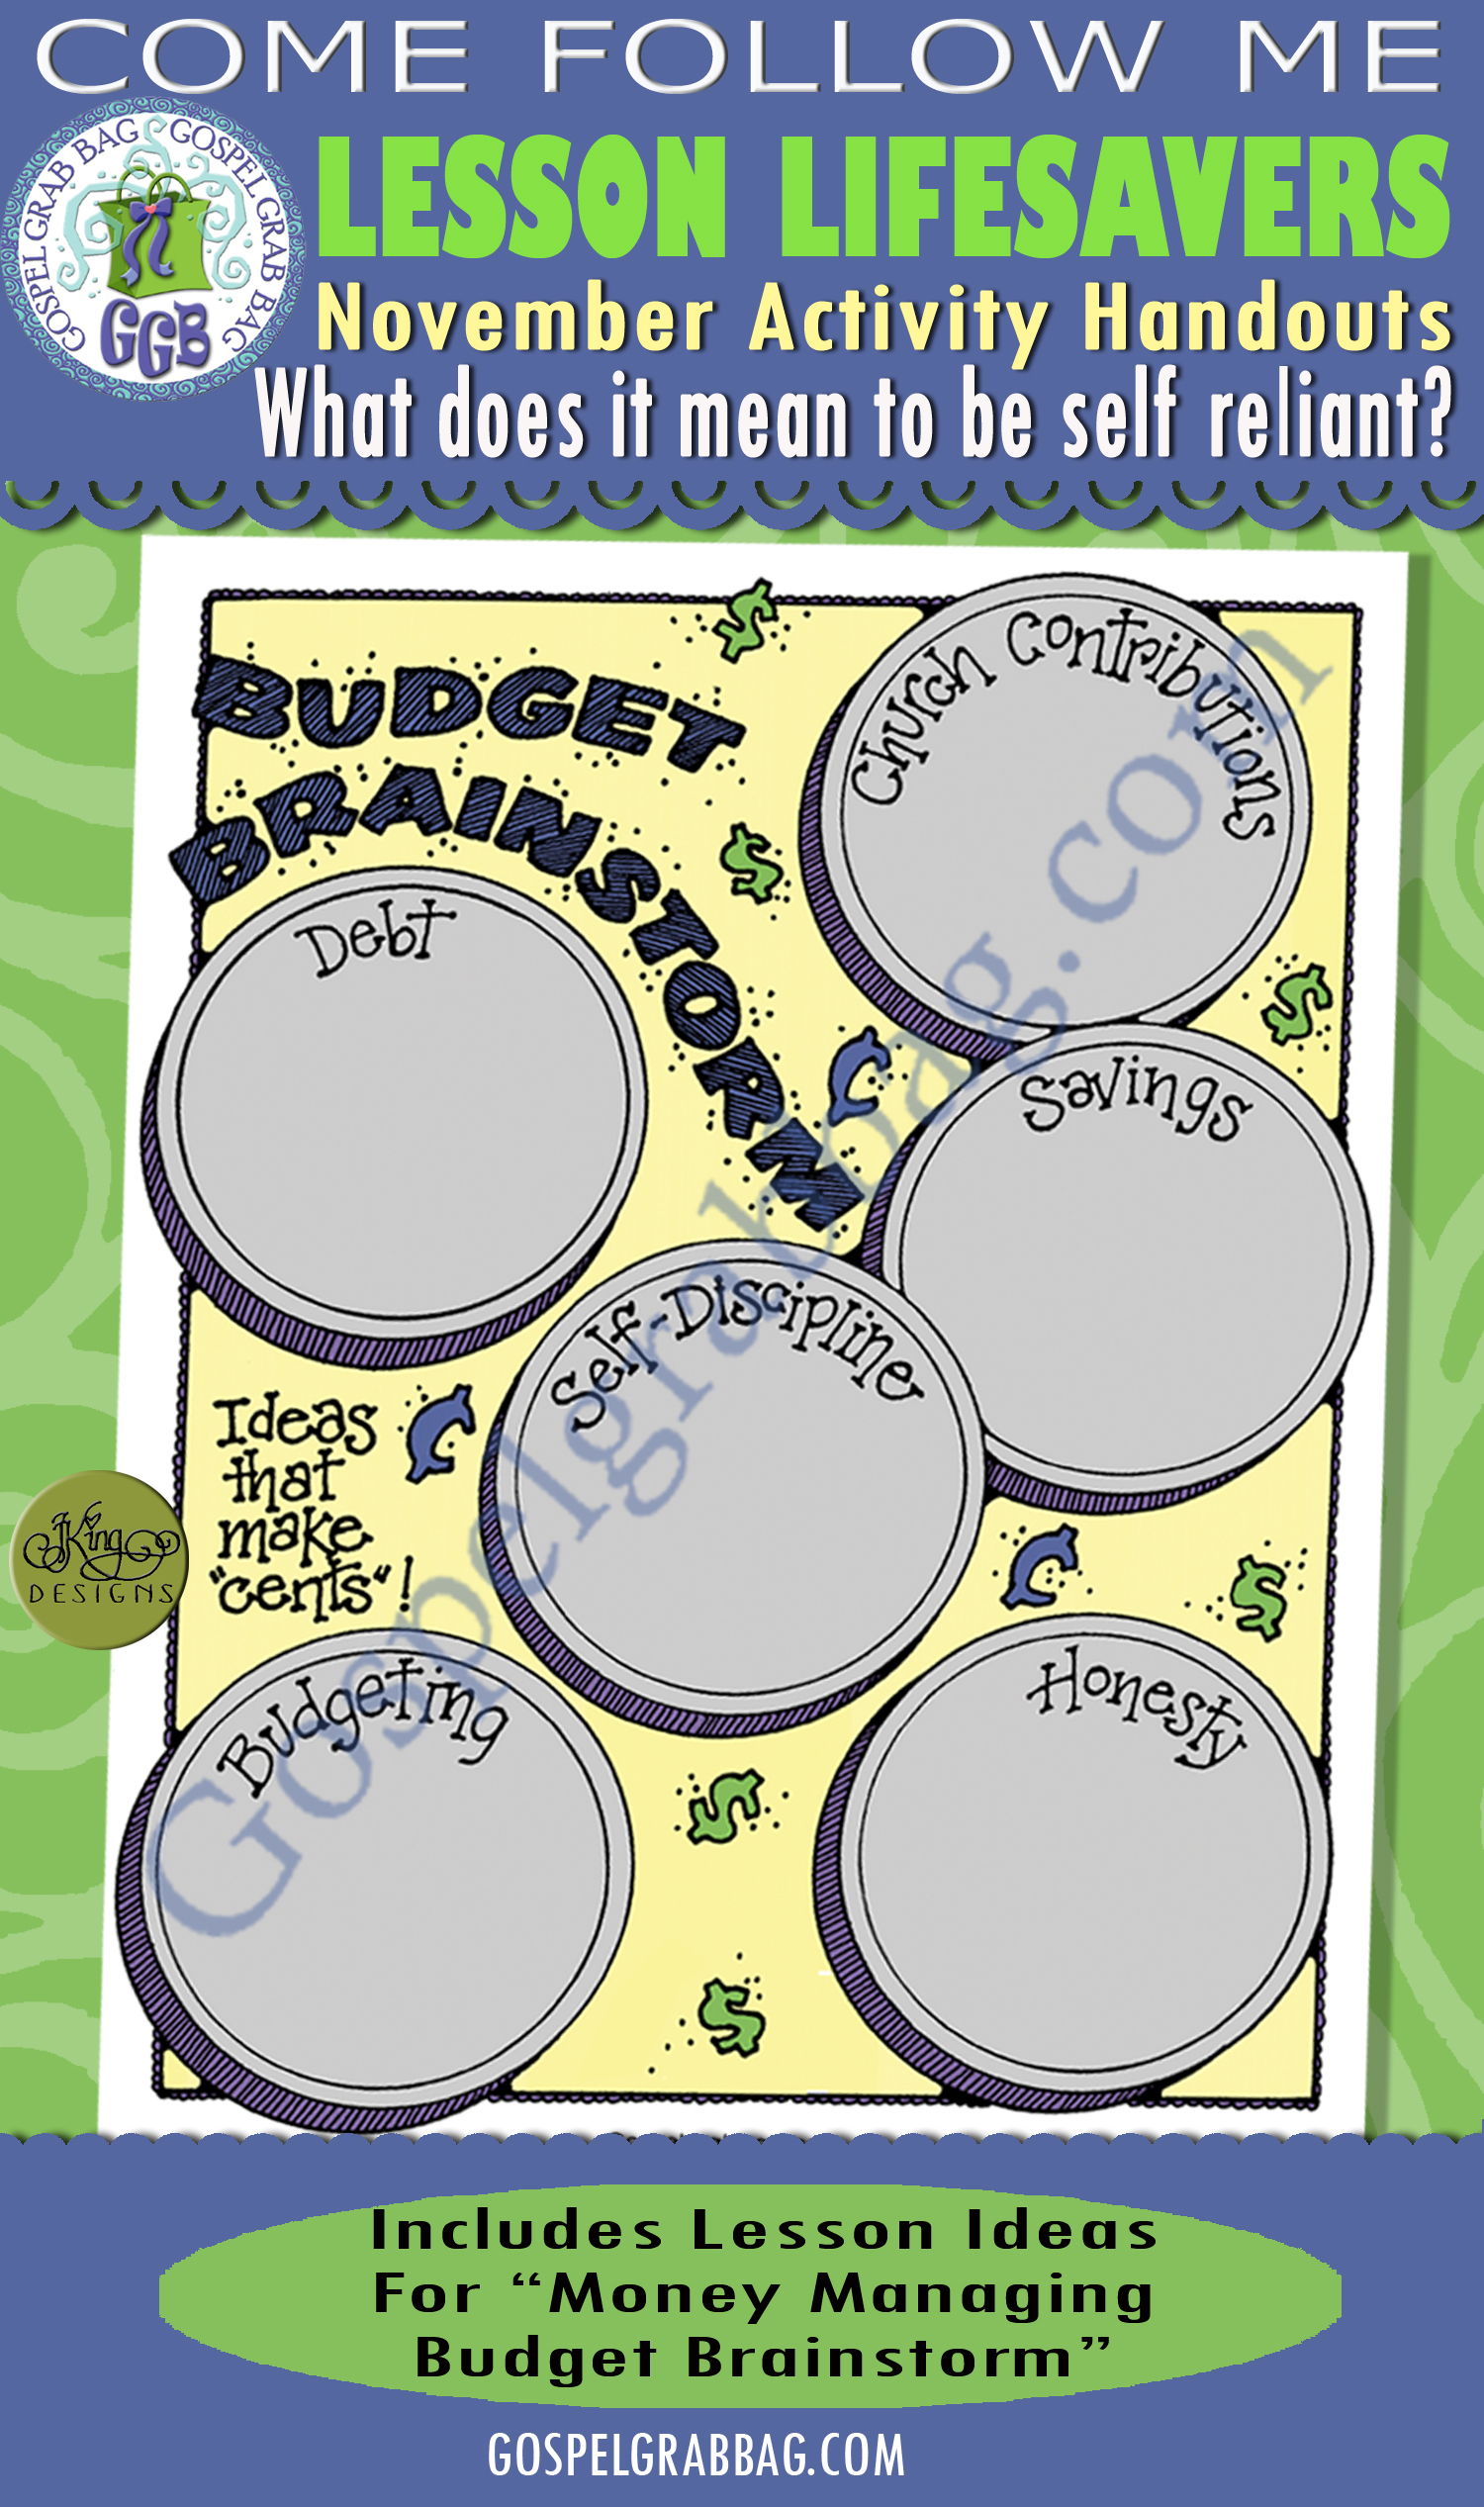 $1.75 or BUNDLE: Come Follow Me November Lesson: What does it mean to be self-reliant? ACTIVITY: Managing Money - Budget Brainsorm planner, LDS printables, GospelGrabBag.com